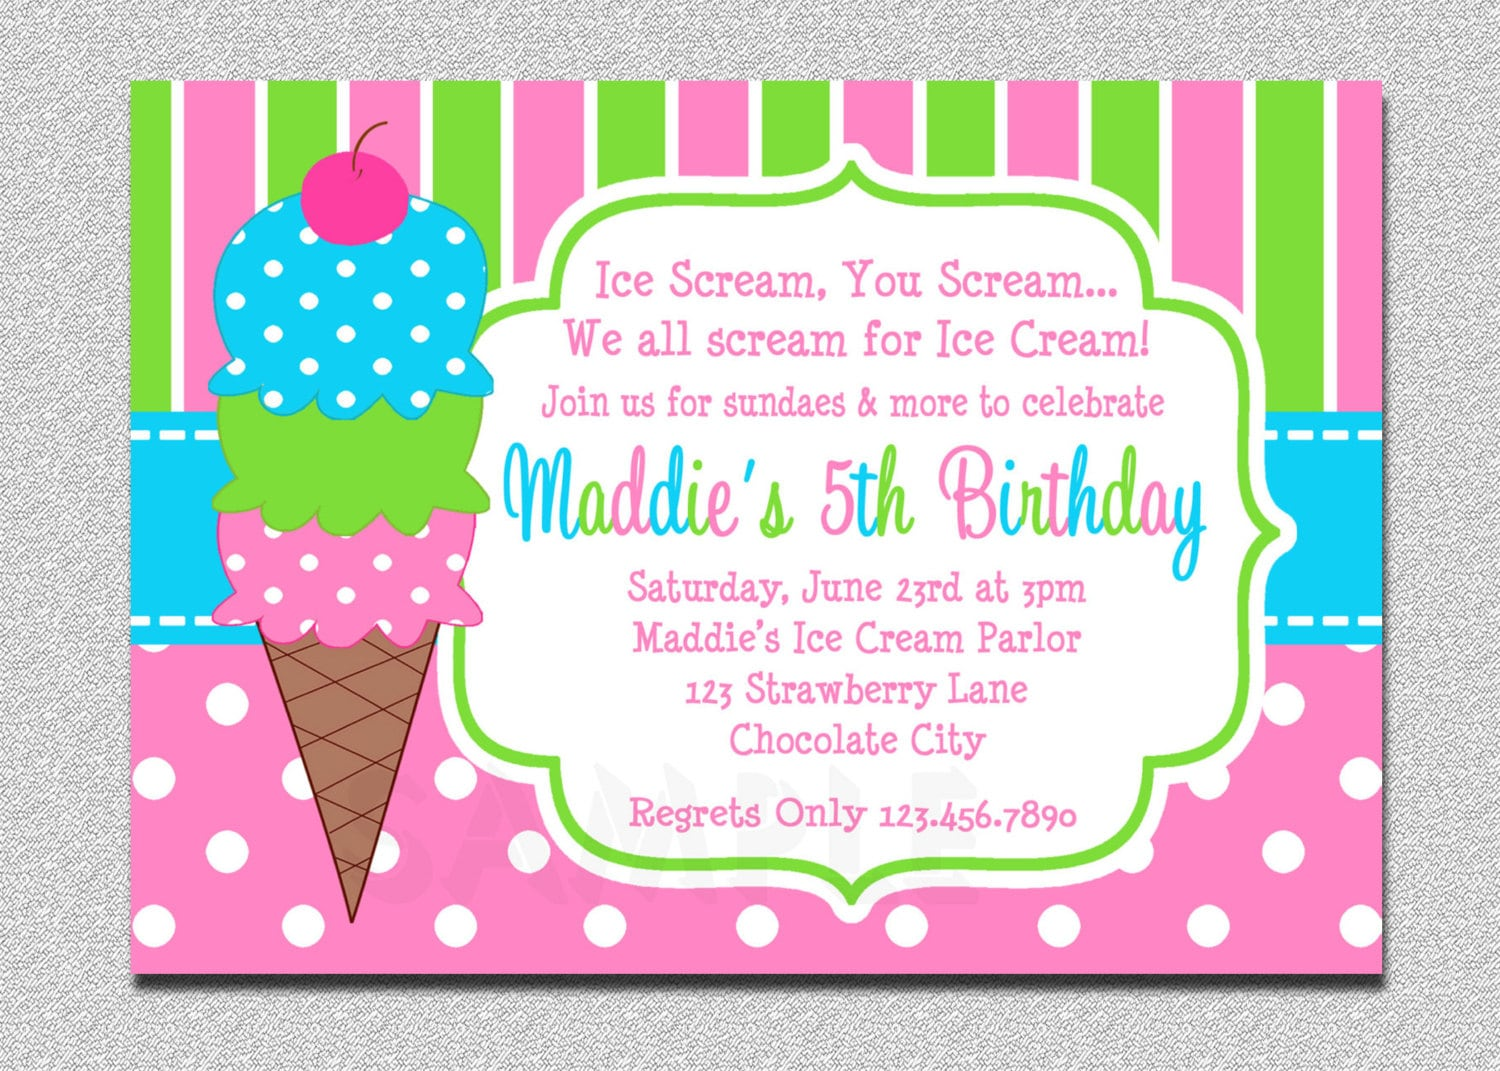 kids birthday party invitation sample - Etame.mibawa.co